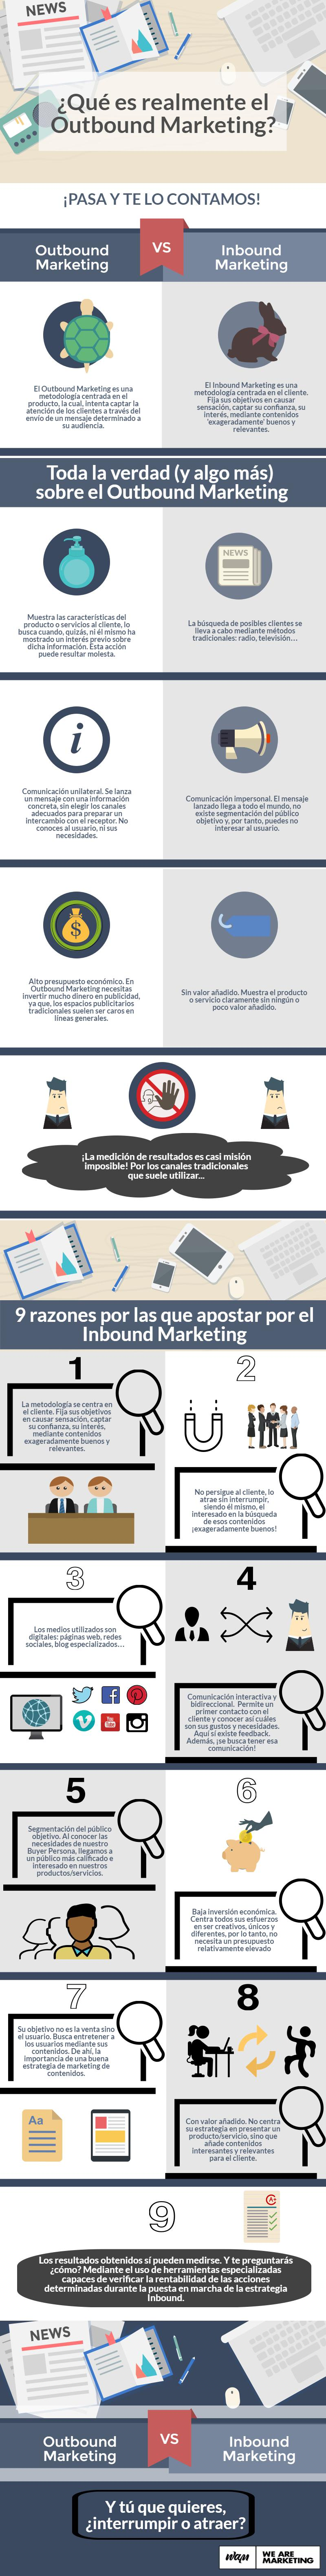 Que es outbound Marketing